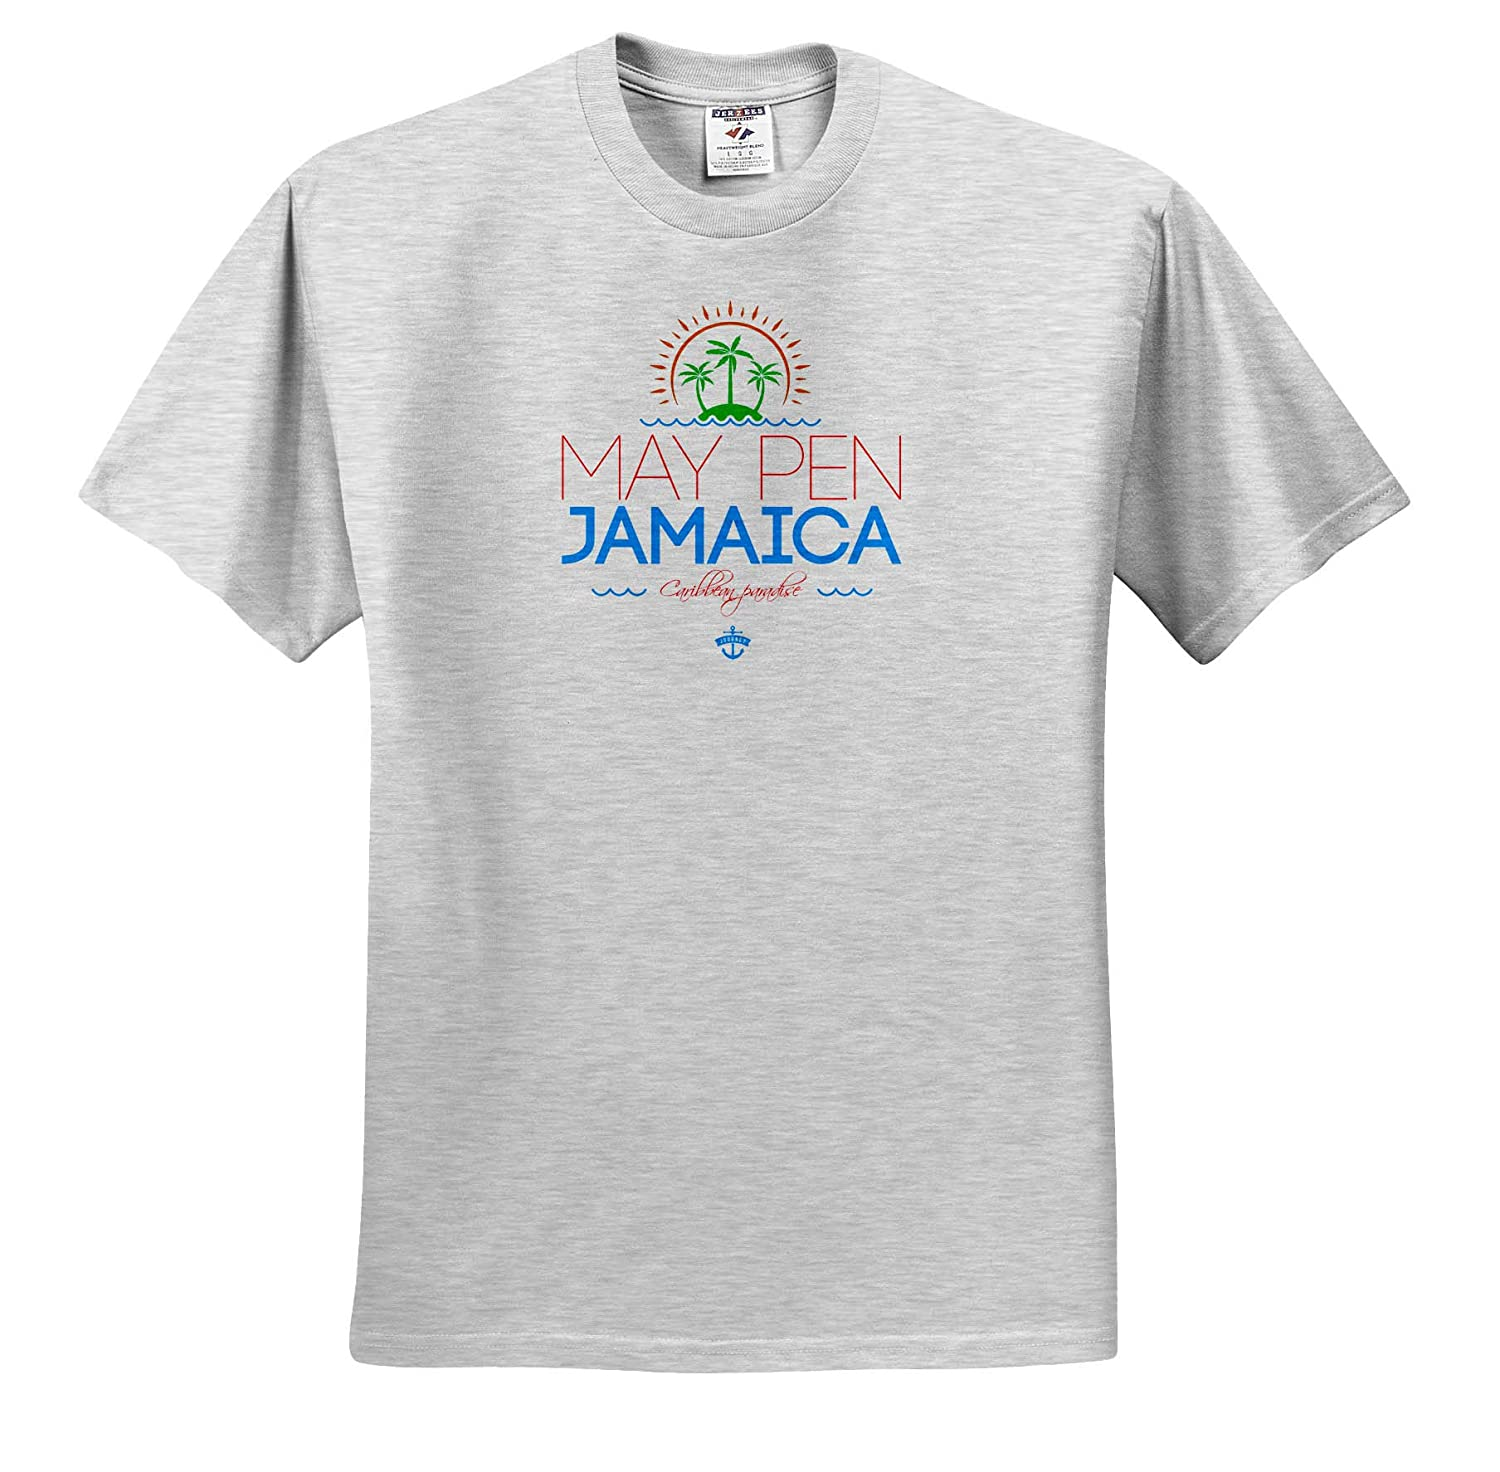 Summer Journey and Fun Cities Jamaica Adult T-Shirt XL ts/_313231 Jamaica City 3dRose Alexis Design May Pen